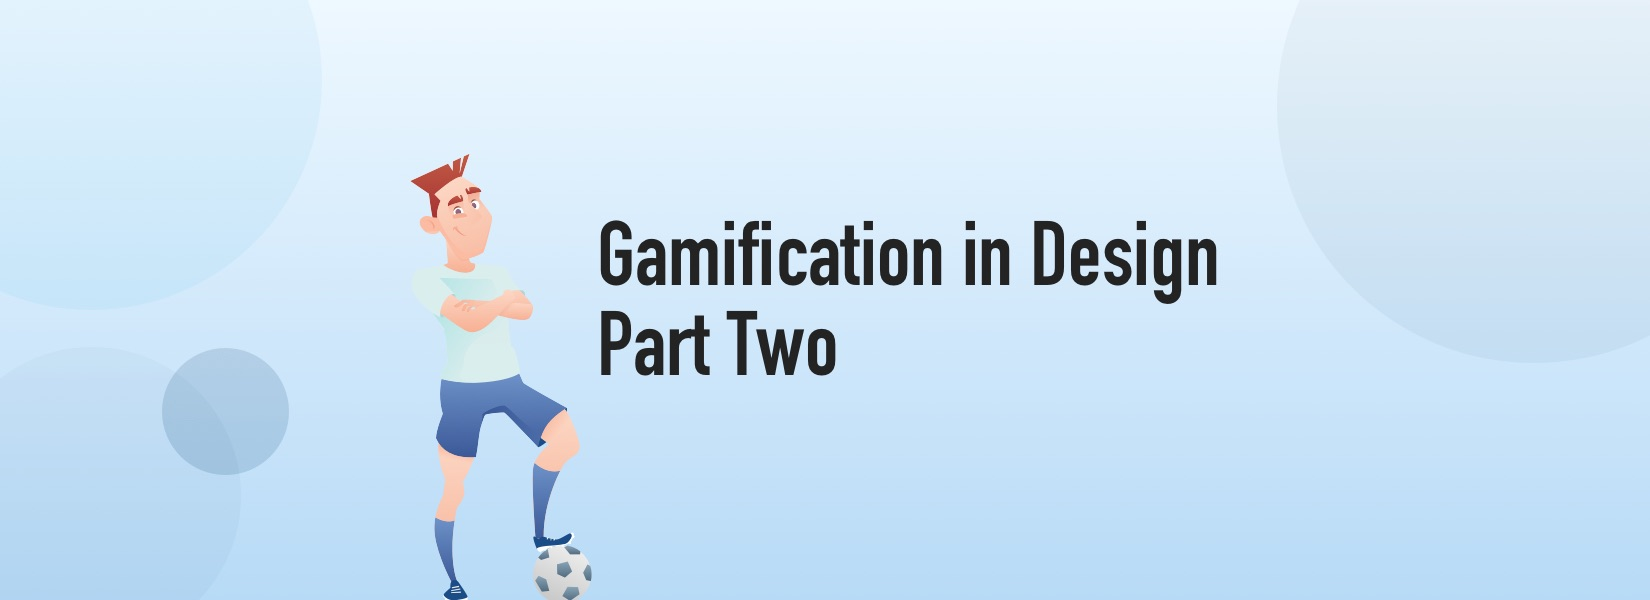 Gamification in Design - Part Two